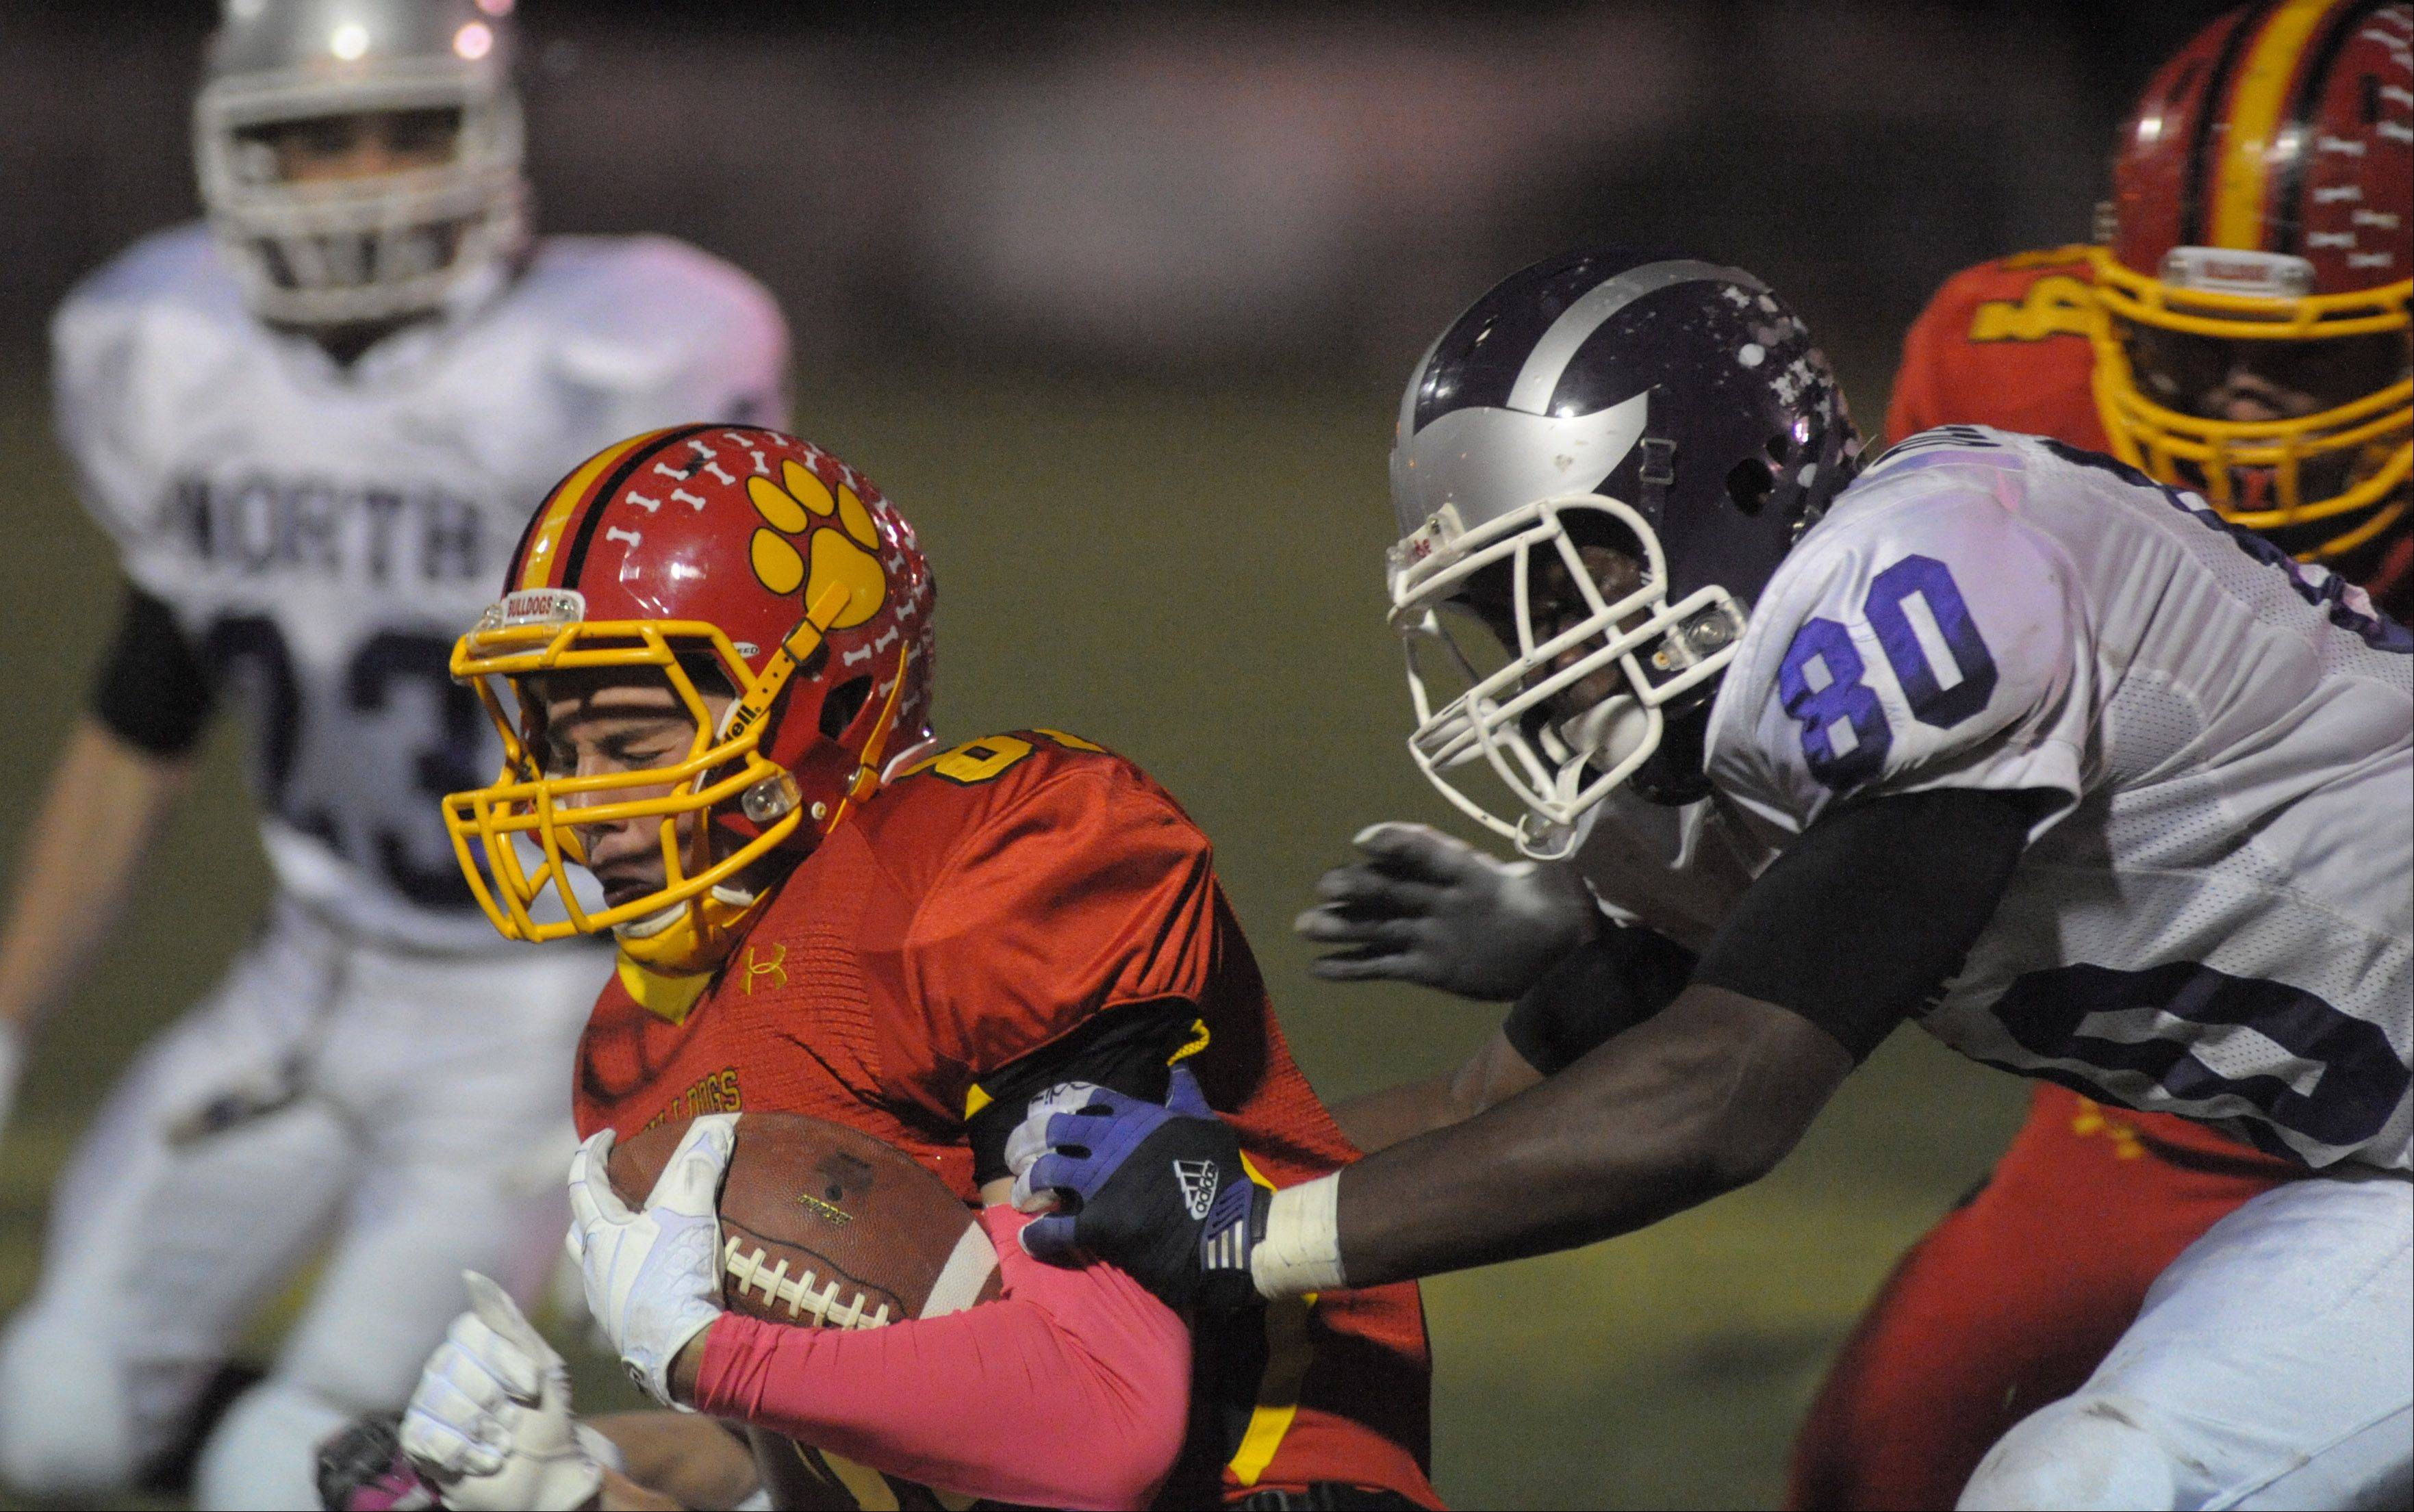 Downers Grove North upsets Batavia